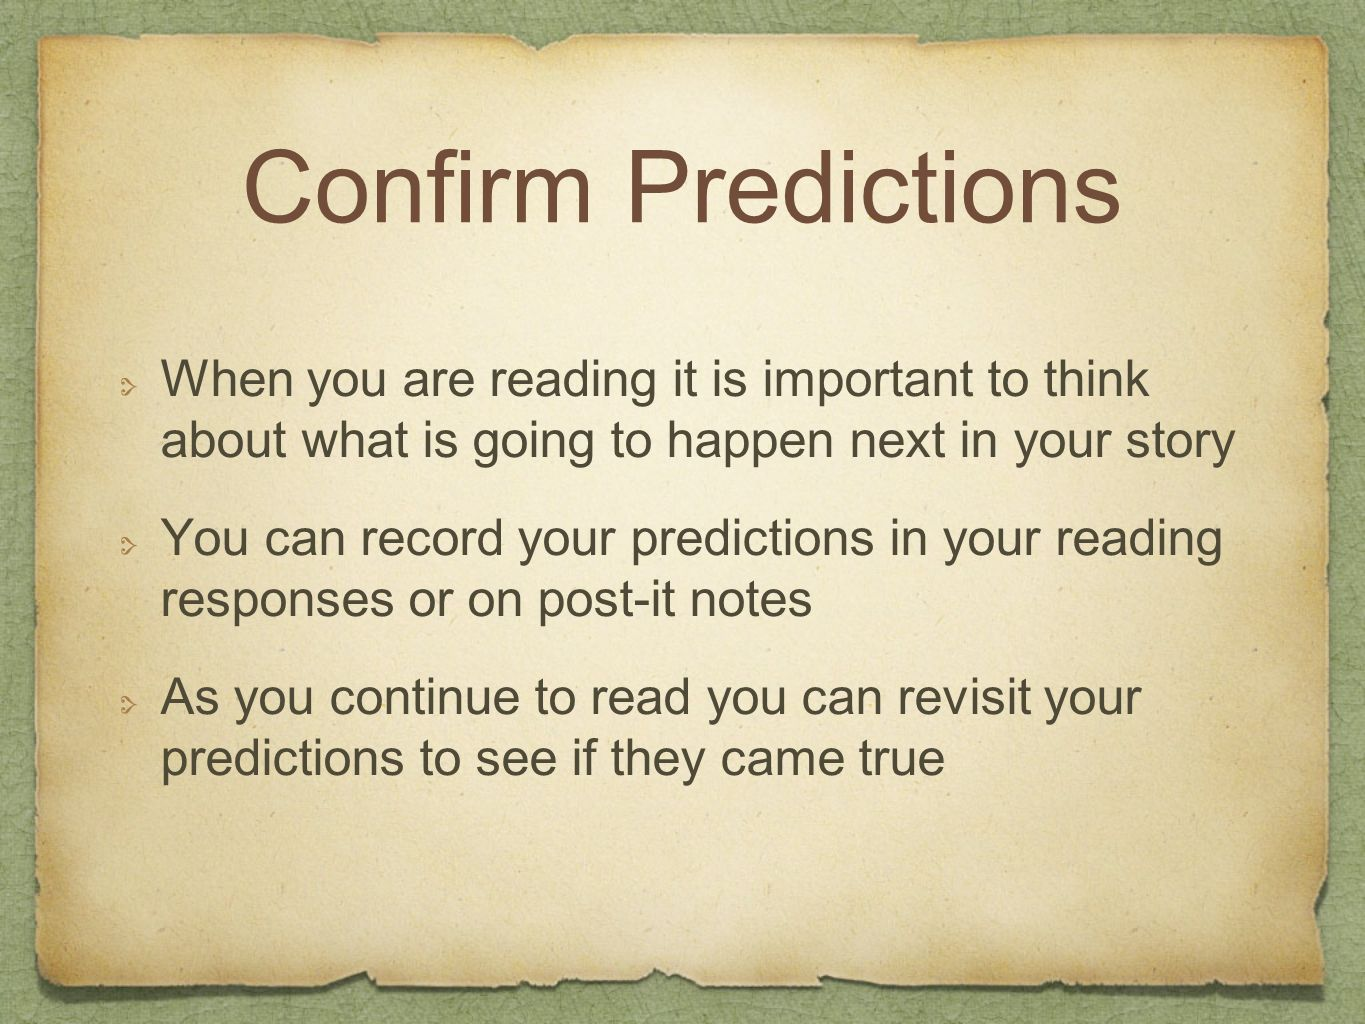 Confirm Predictions When you are reading it is important to think about what is going to happen next in your story You can record your predictions in